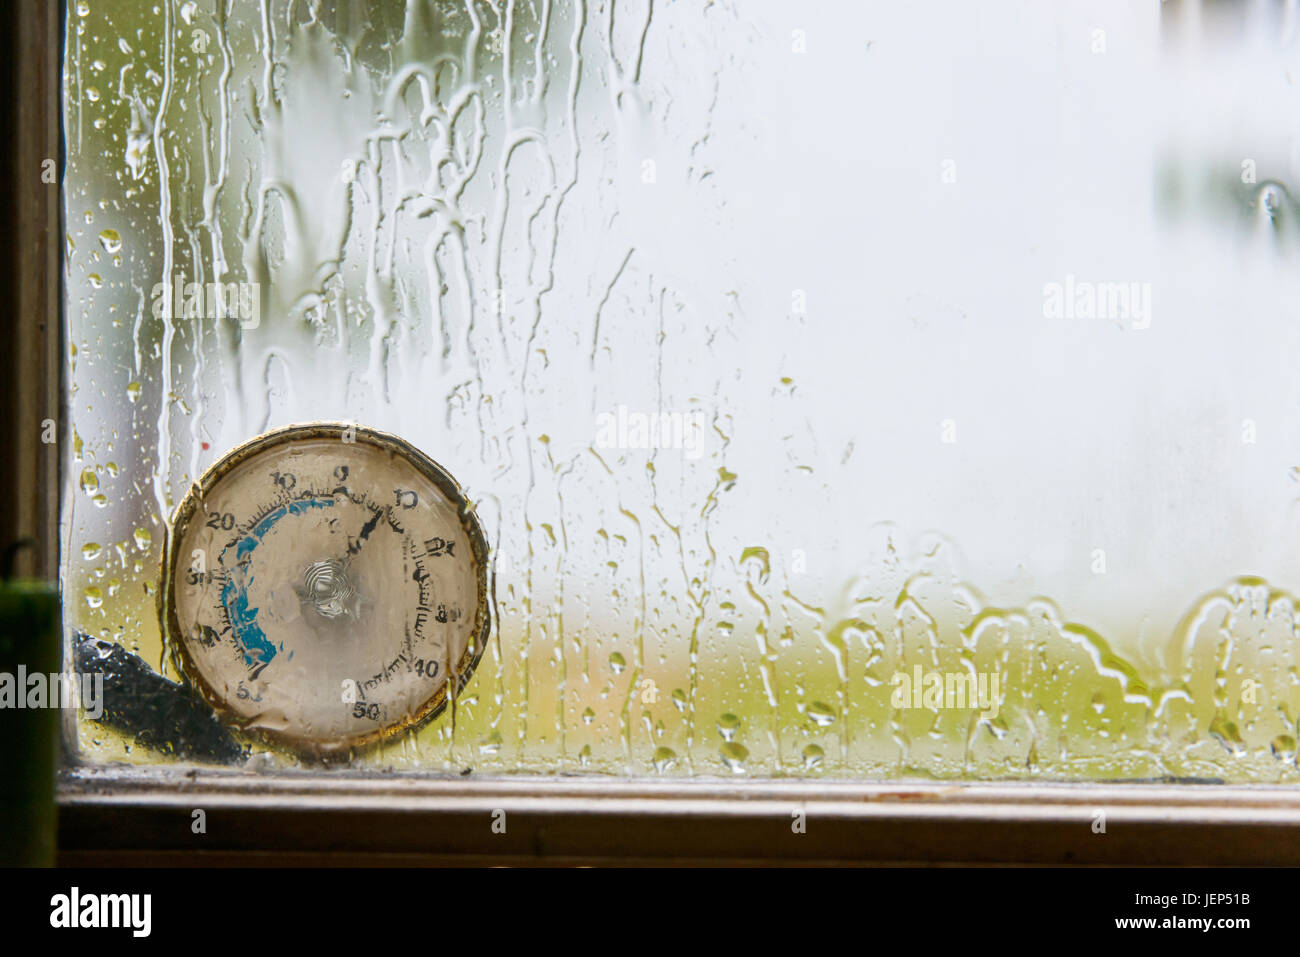 Thermometer behind window - Stock Image